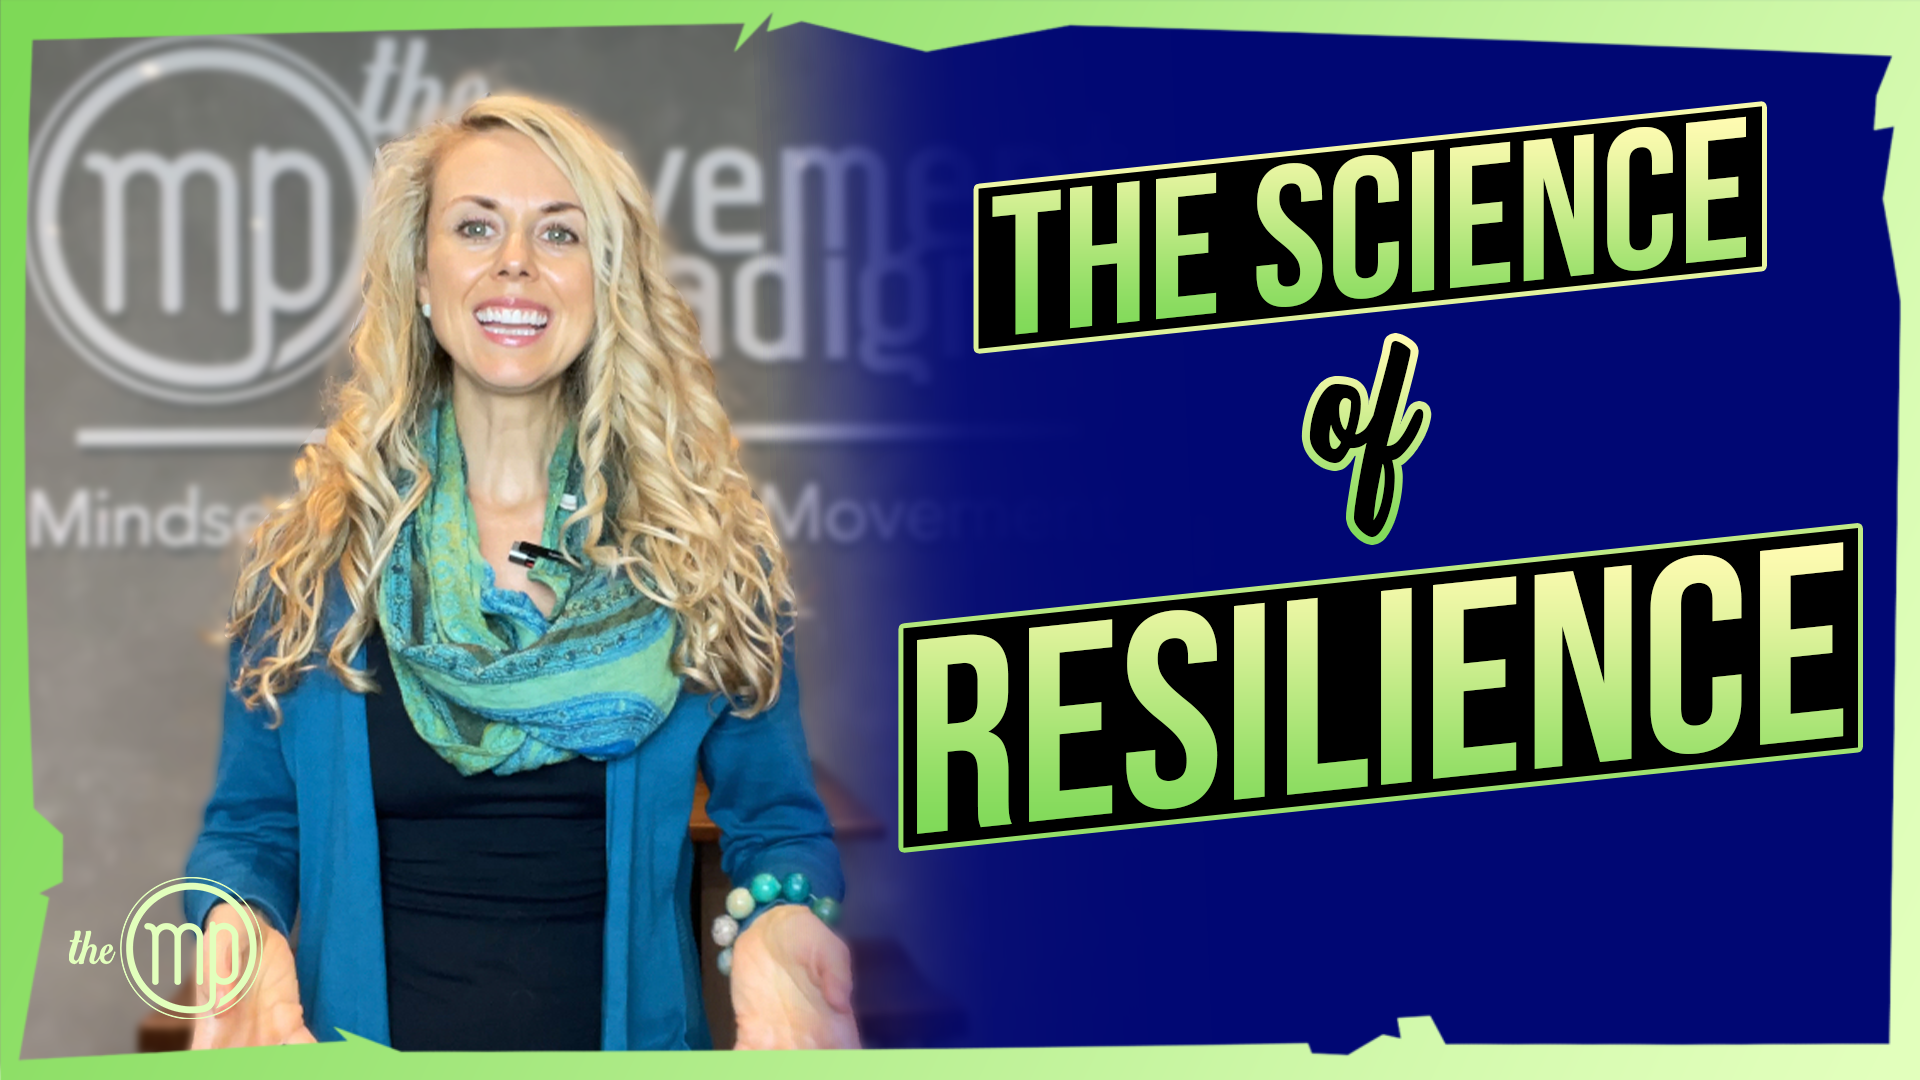 The Science of Resilience | 5 ways to become more resilient